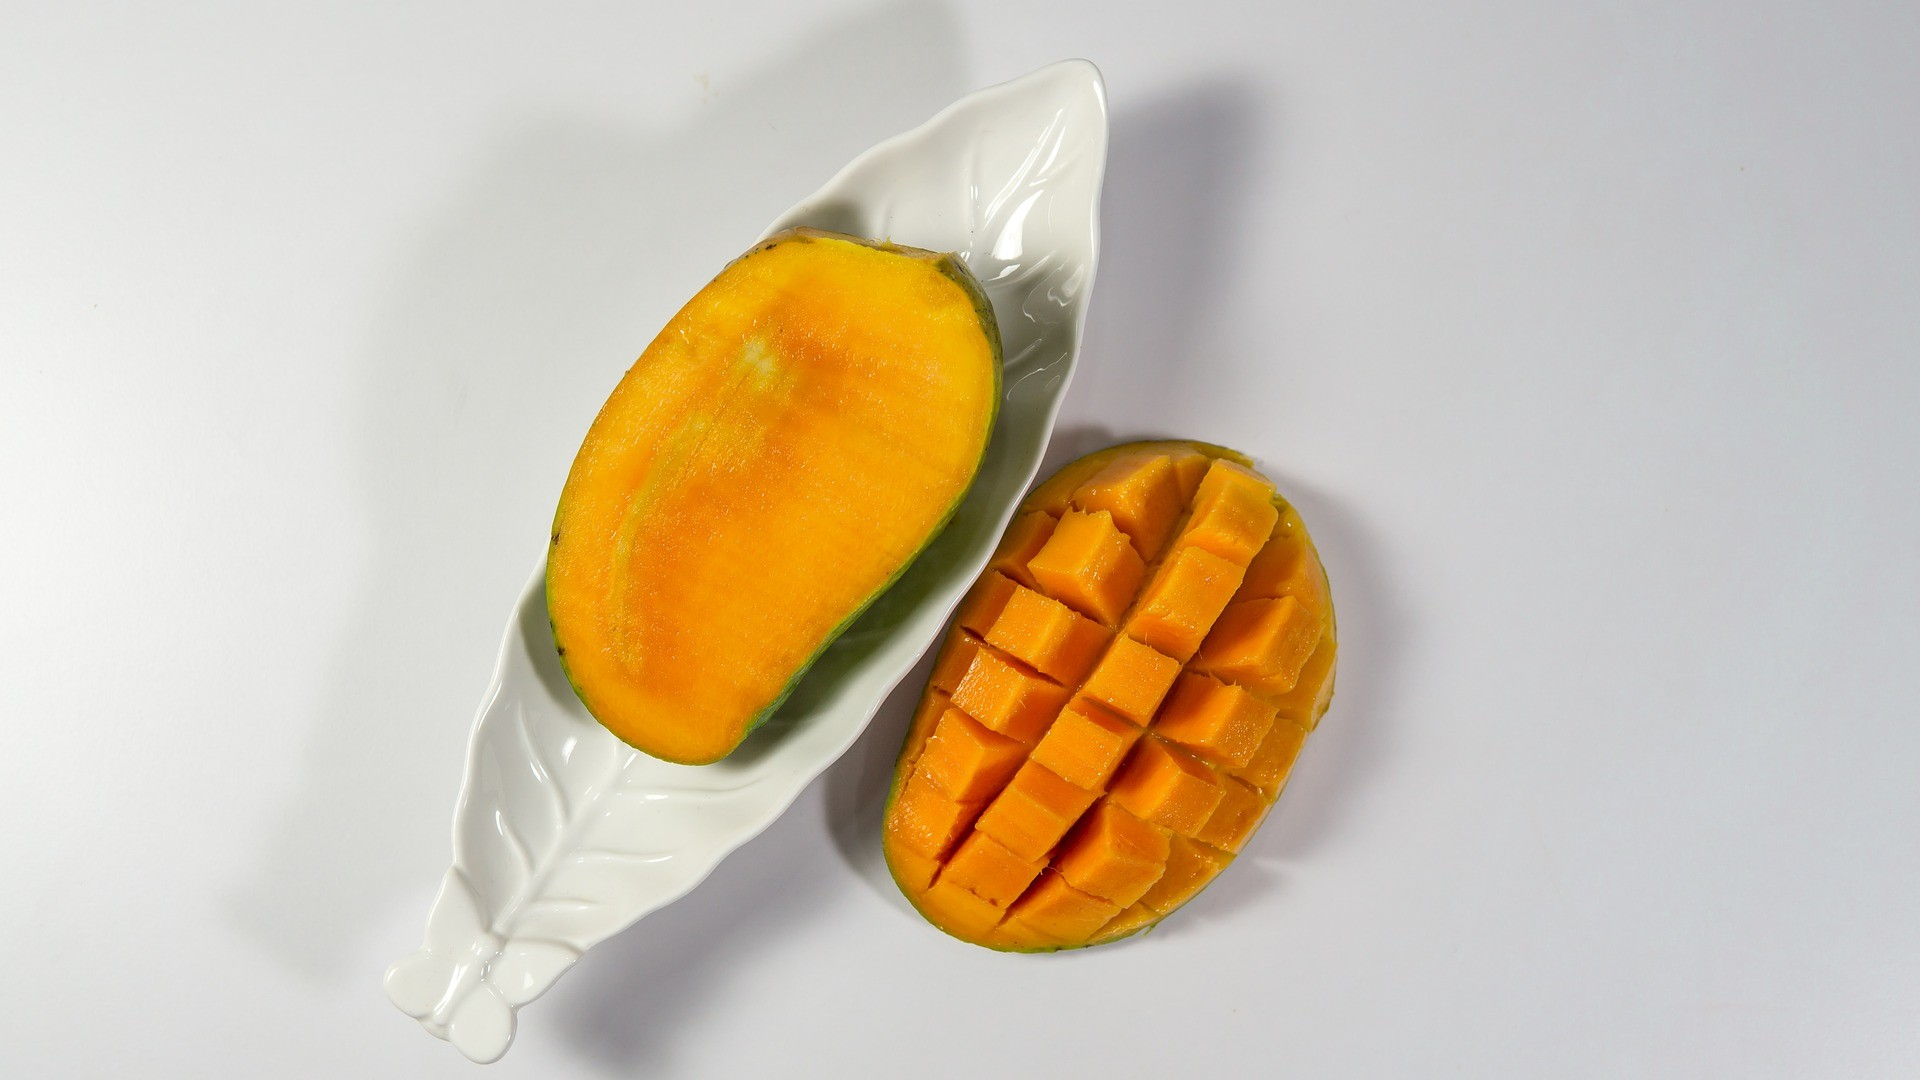 1920x1080 Ripe Mango Chopped with White Background